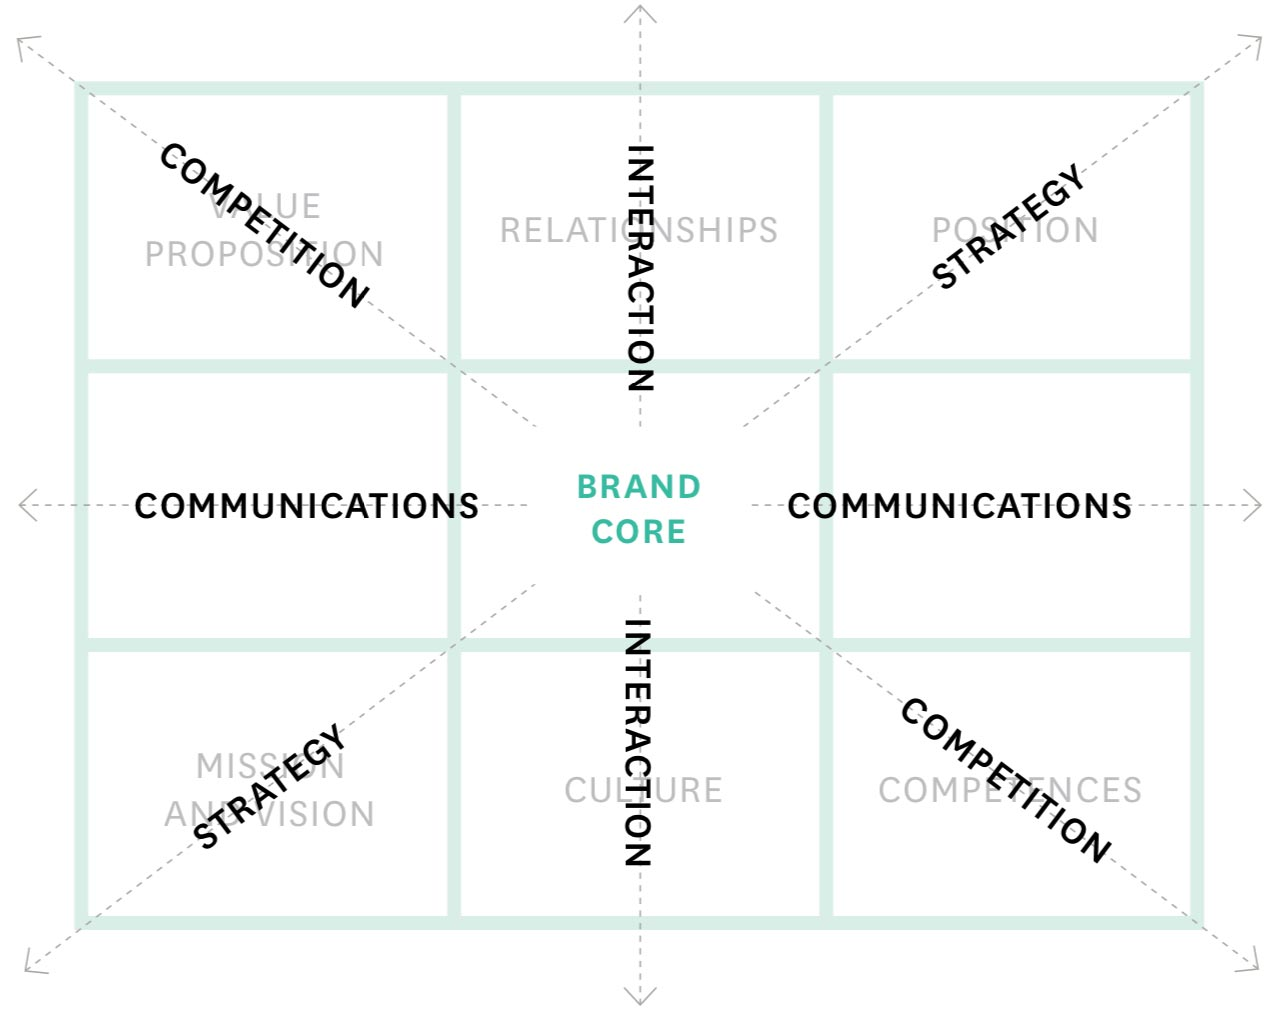 corporate brand identity matrix kloppend maken